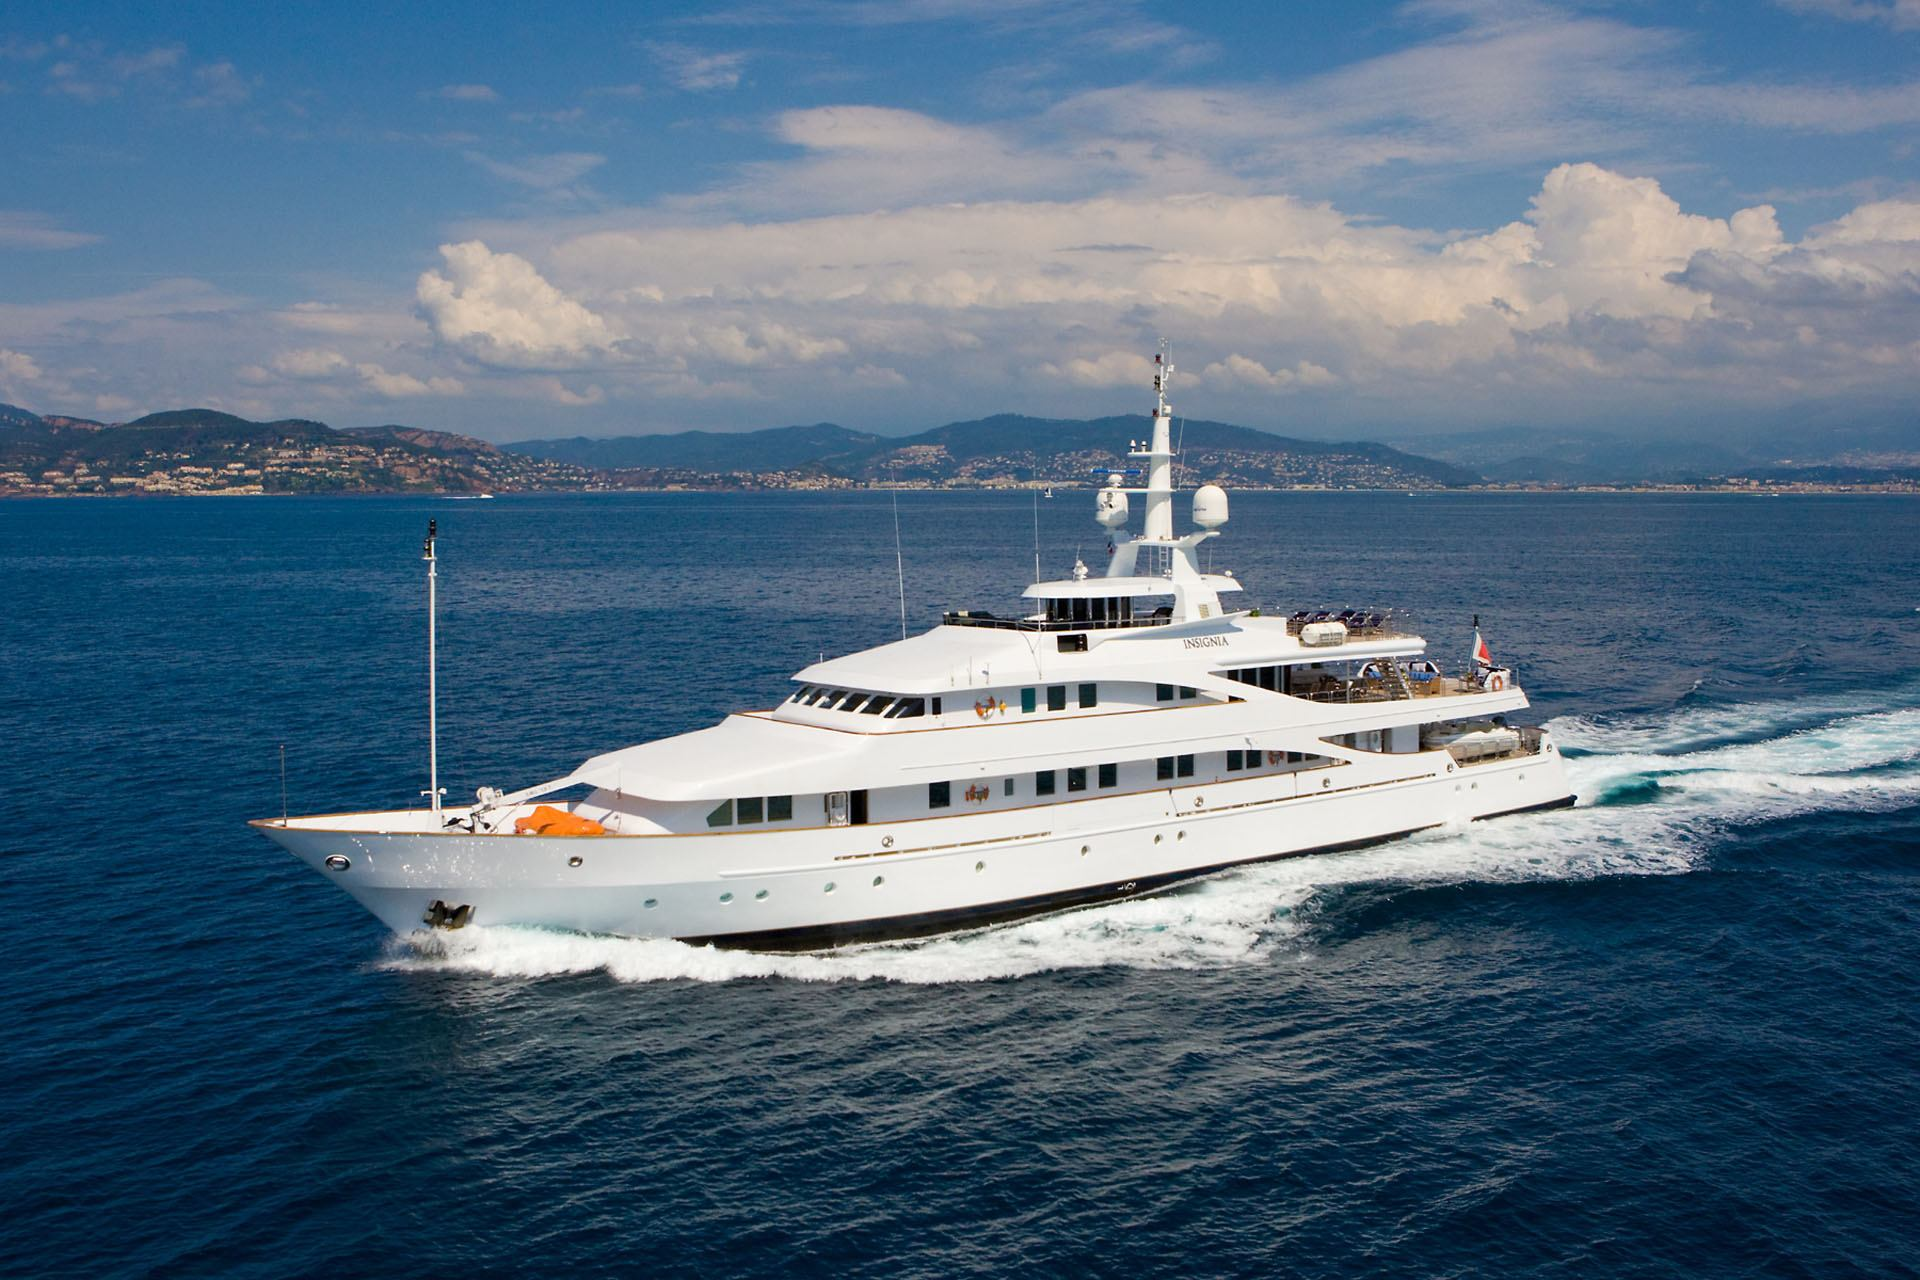 Private Yacht, Vip Yacht, yach vacation, private yach vacation, Greece Luxury Yacht Charter, Luxury Vacation, yacht cruise, luxury cruise